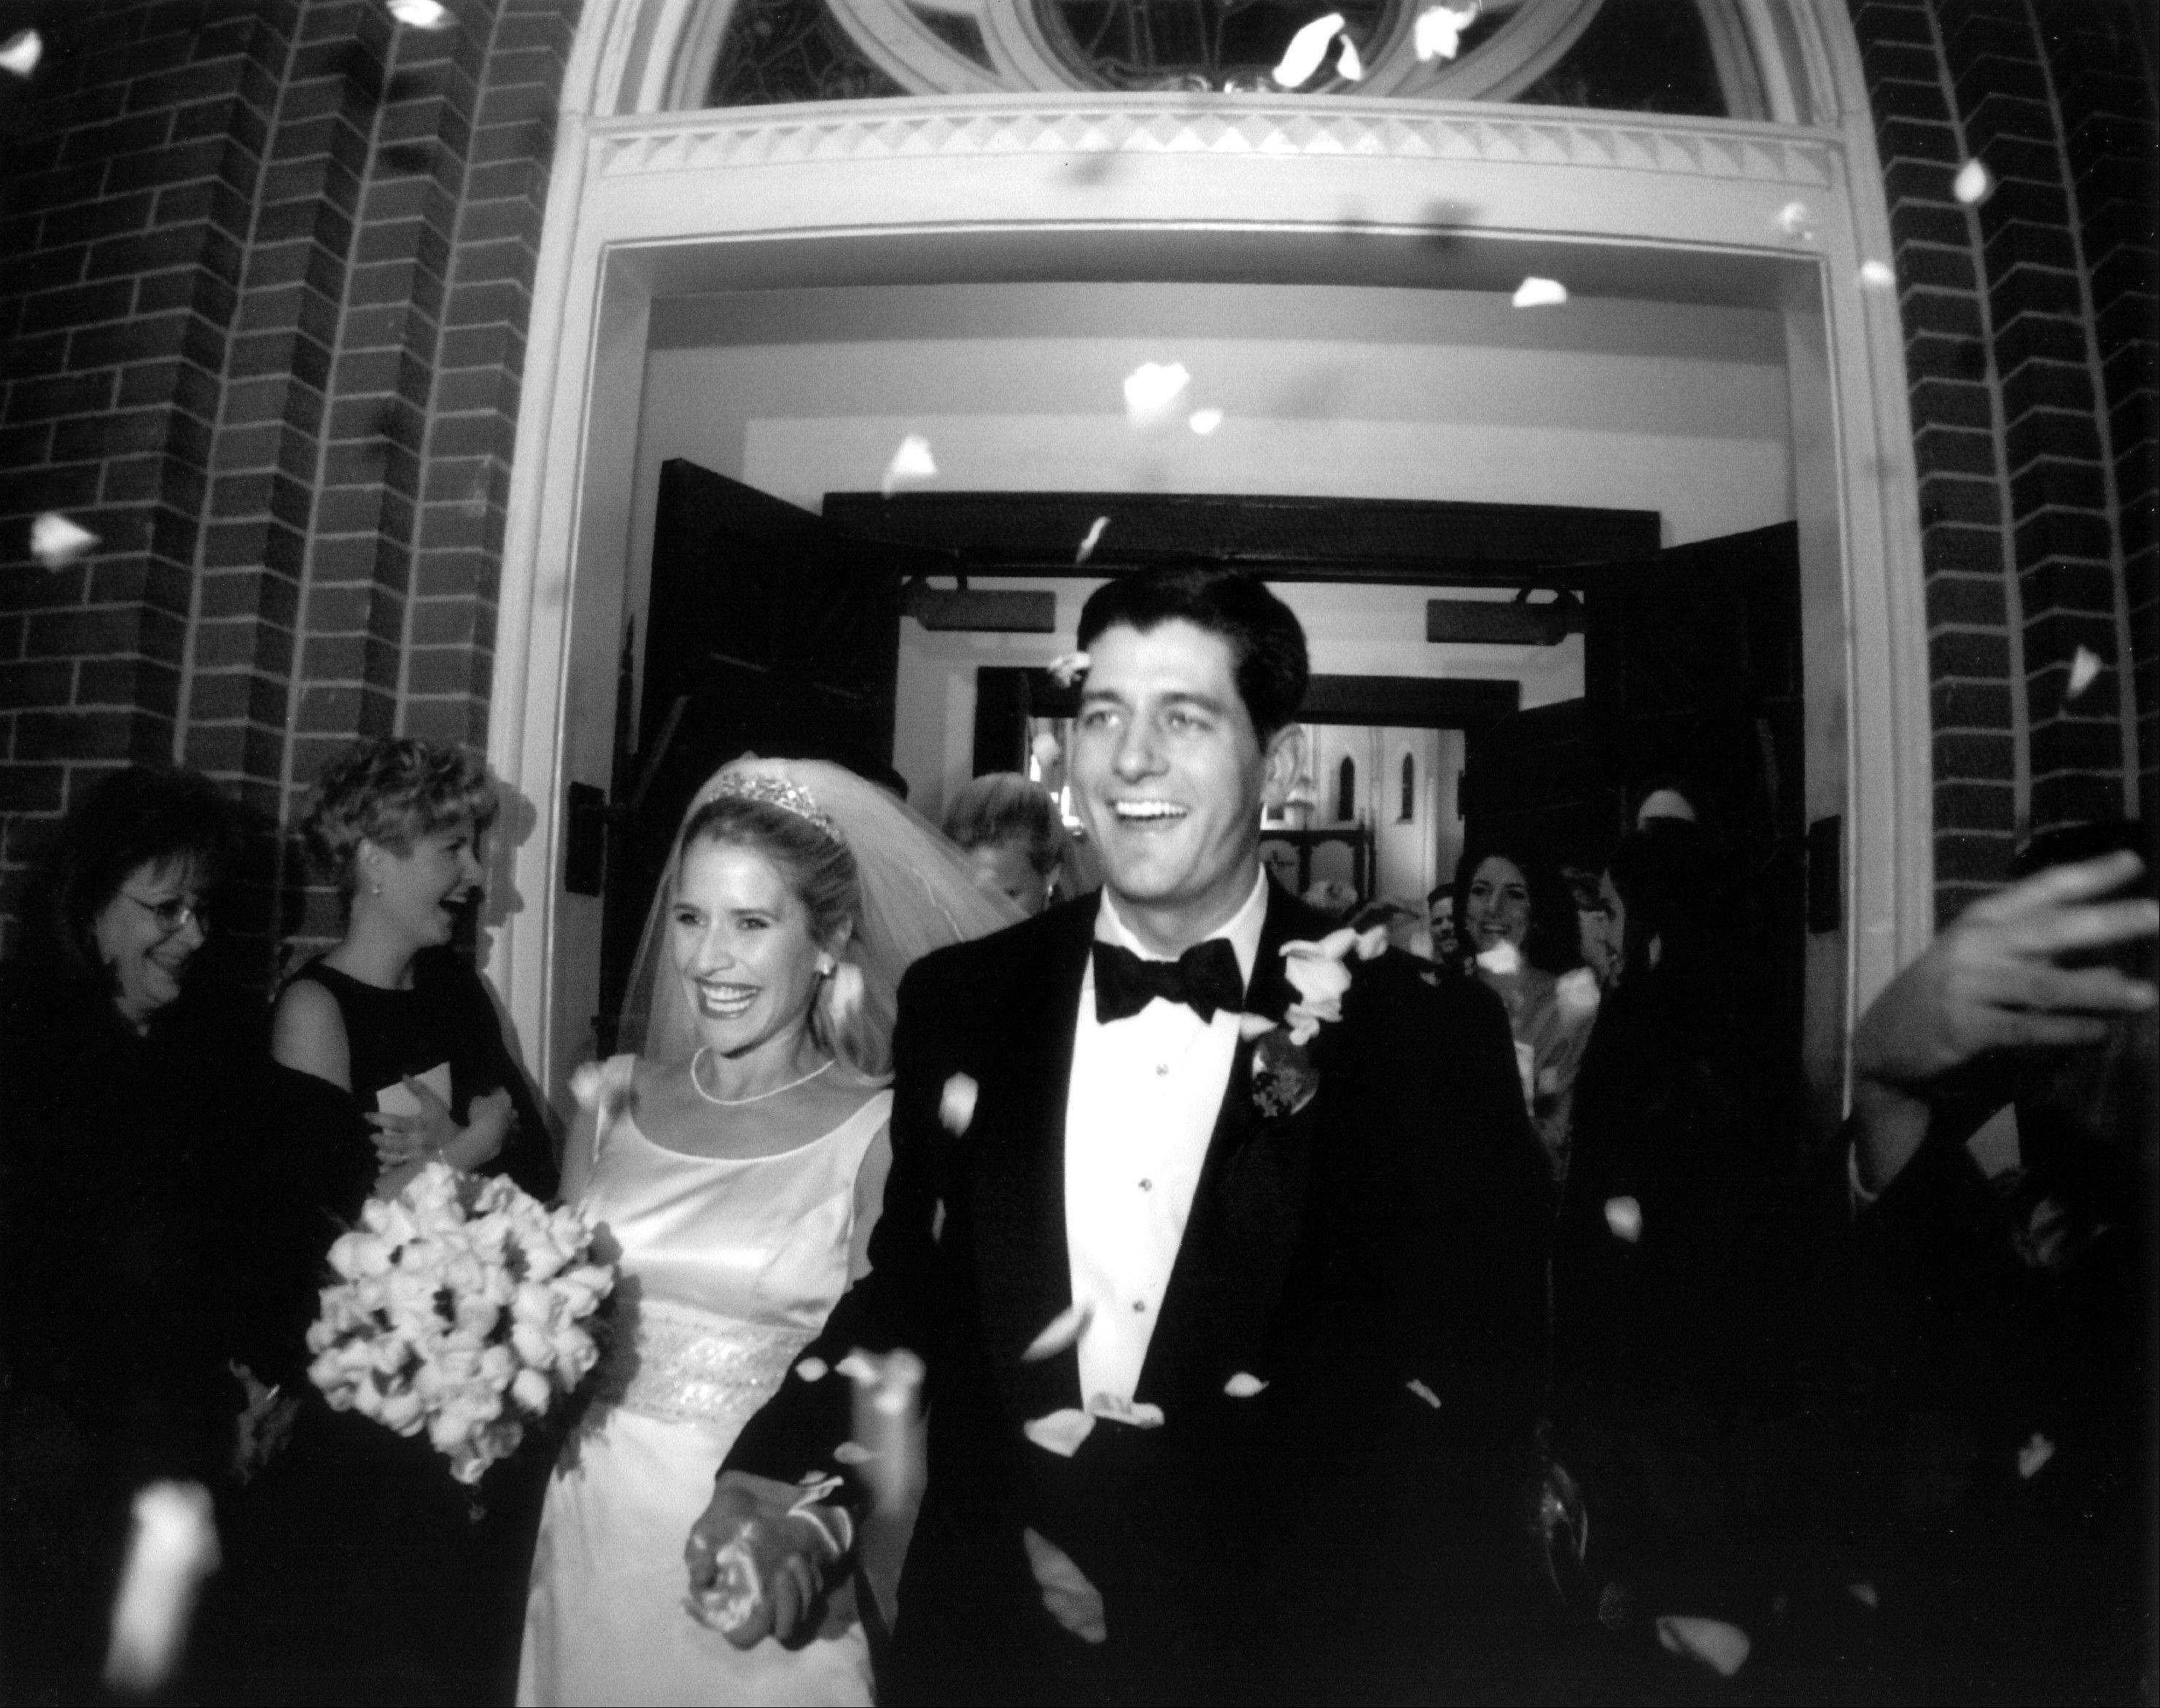 This undated photo provided by the Ryan family shows Paul Ryan and Janna Ryan on the day of their wedding. During his first term in Congress, Ryan met and married Janna Little, a lawyer and lobbyist from an affluent Oklahoma family, who was working in the Washington area. In the days since Republican presidential candidate, former Massachusetts Gov. Mitt Romney selected Ryan for the vice presidential slot on the Republican ticket, the now 42-year-old congressman's biography has become instant folklore. Lifelong resident of a little city in the heartland, embracing new responsibilities as a teen after the sudden death of his father. Devoted husband and father, devout Roman Catholic, avid deer hunter, fisherman and fitness buff.